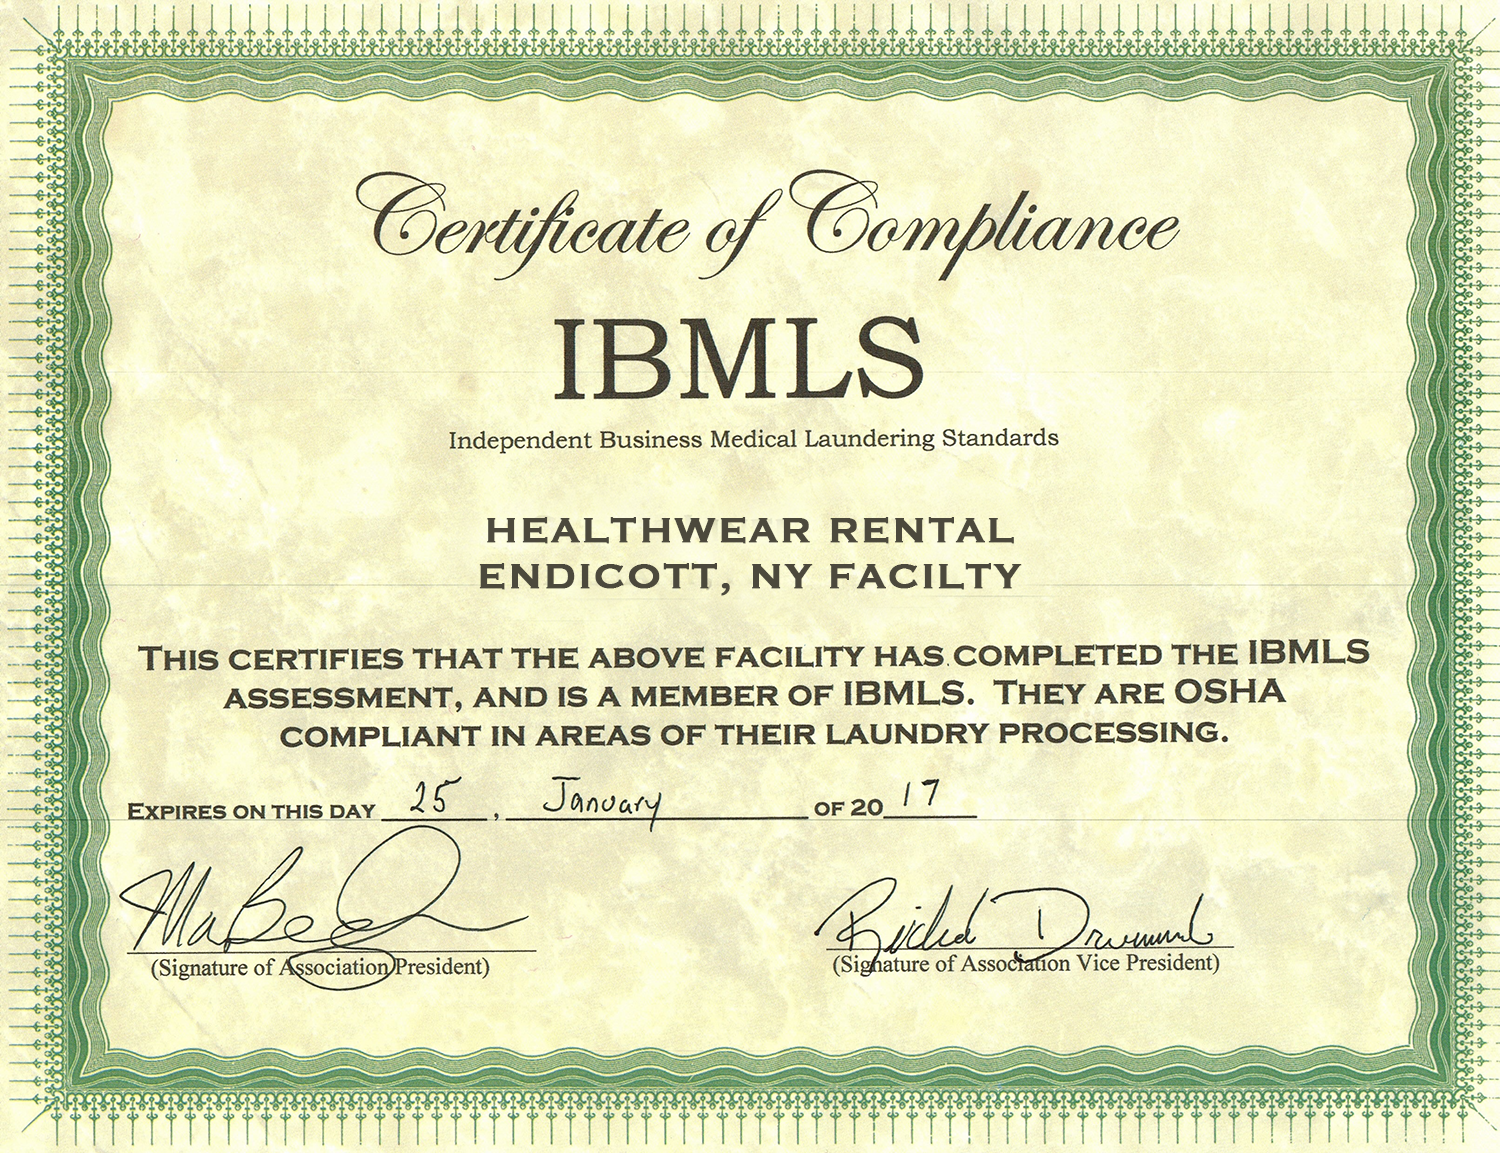 IBMLS-certificate